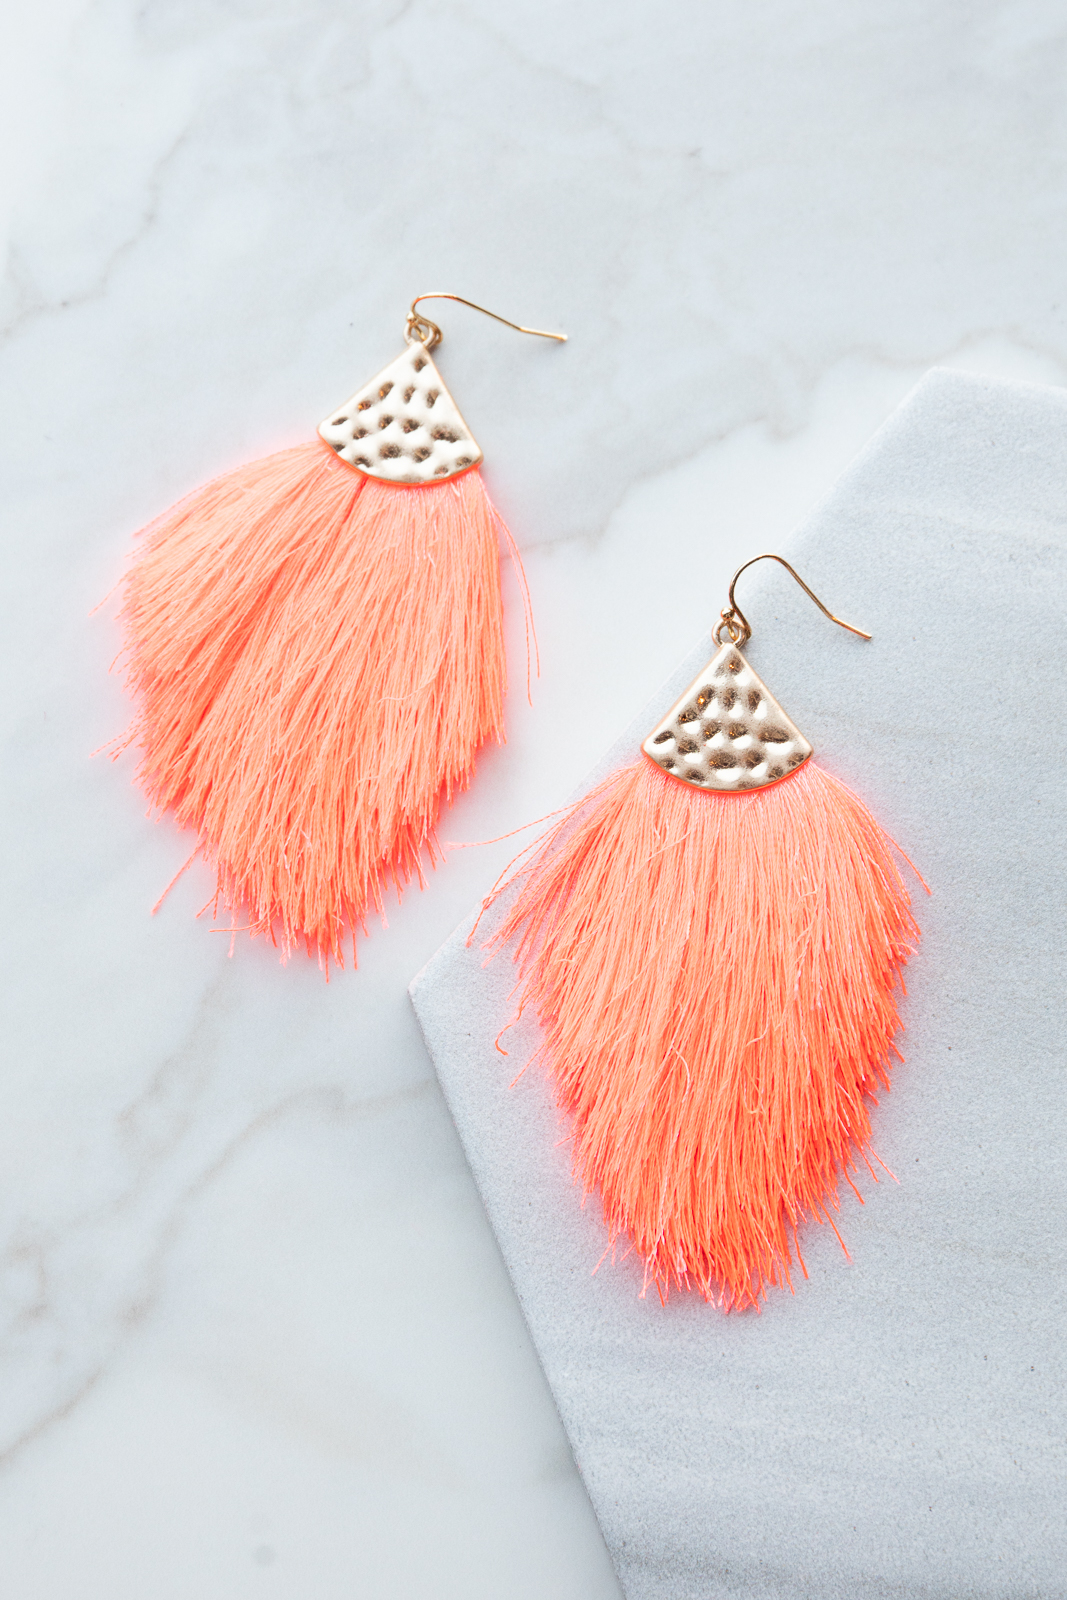 Neon Pink Tassel Dangle Earrings with Gold Hammered Metal